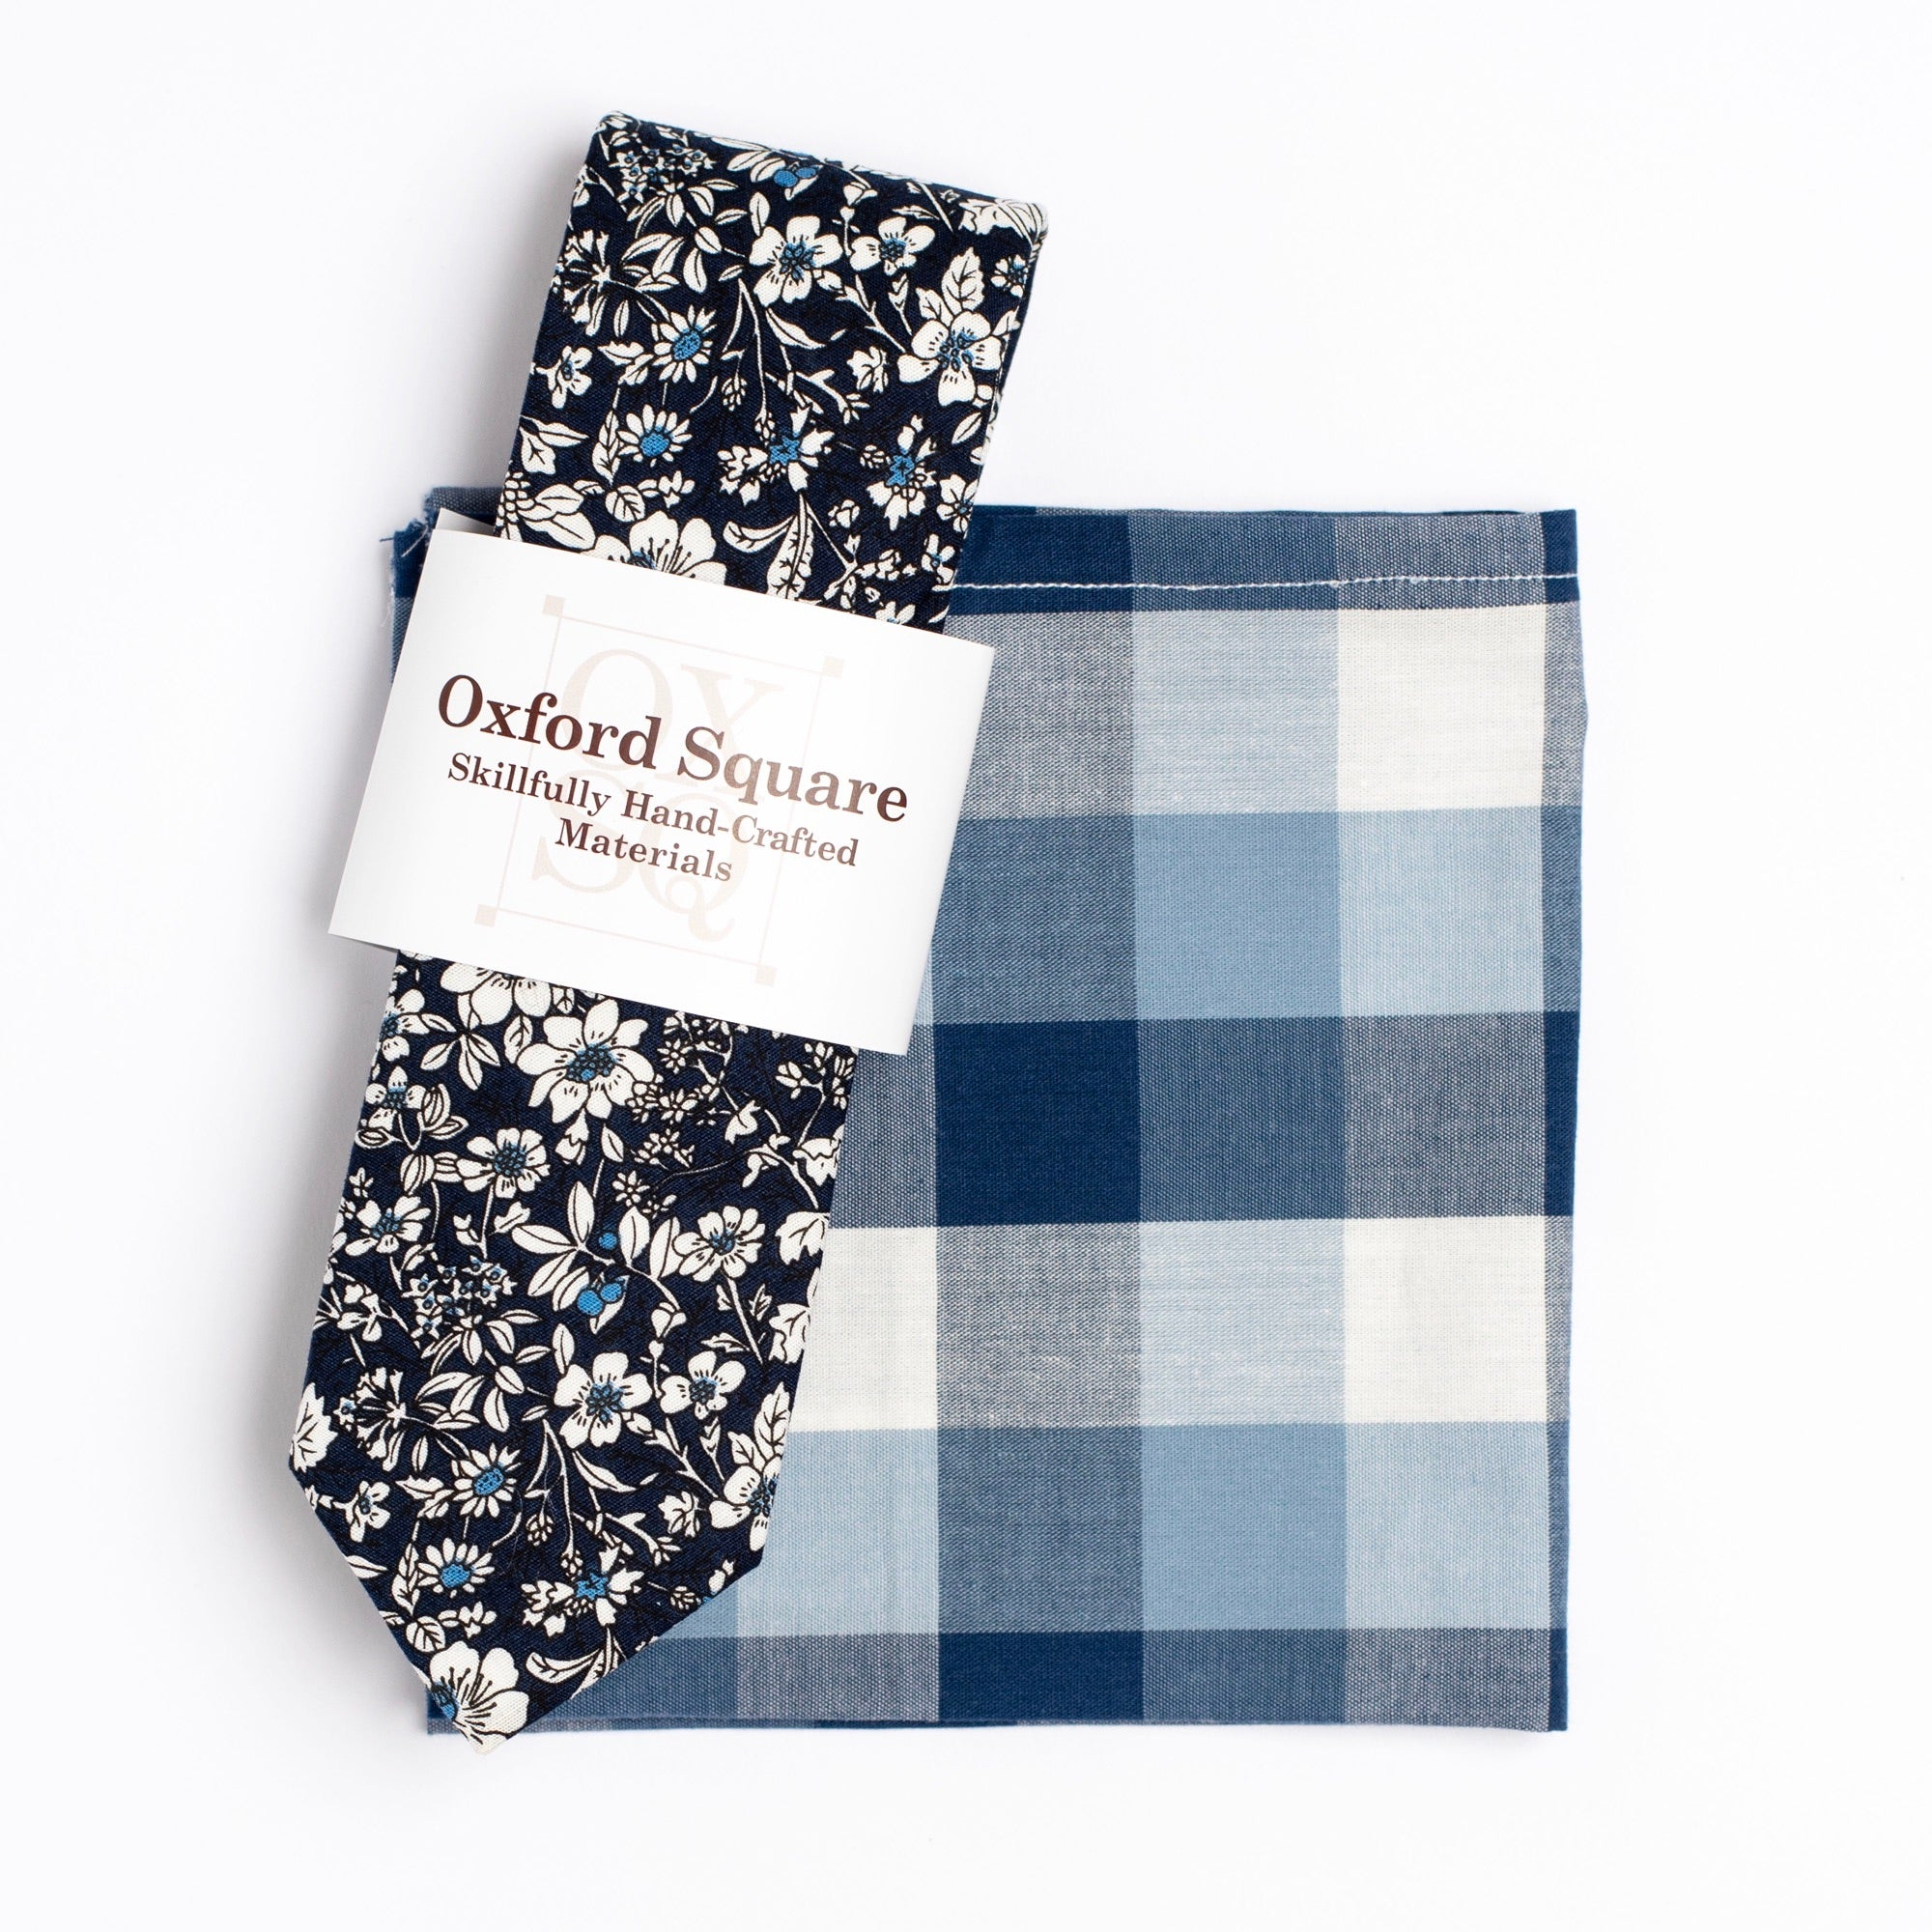 blue and white gingham pocket square and floral tie pack - Oxford Square